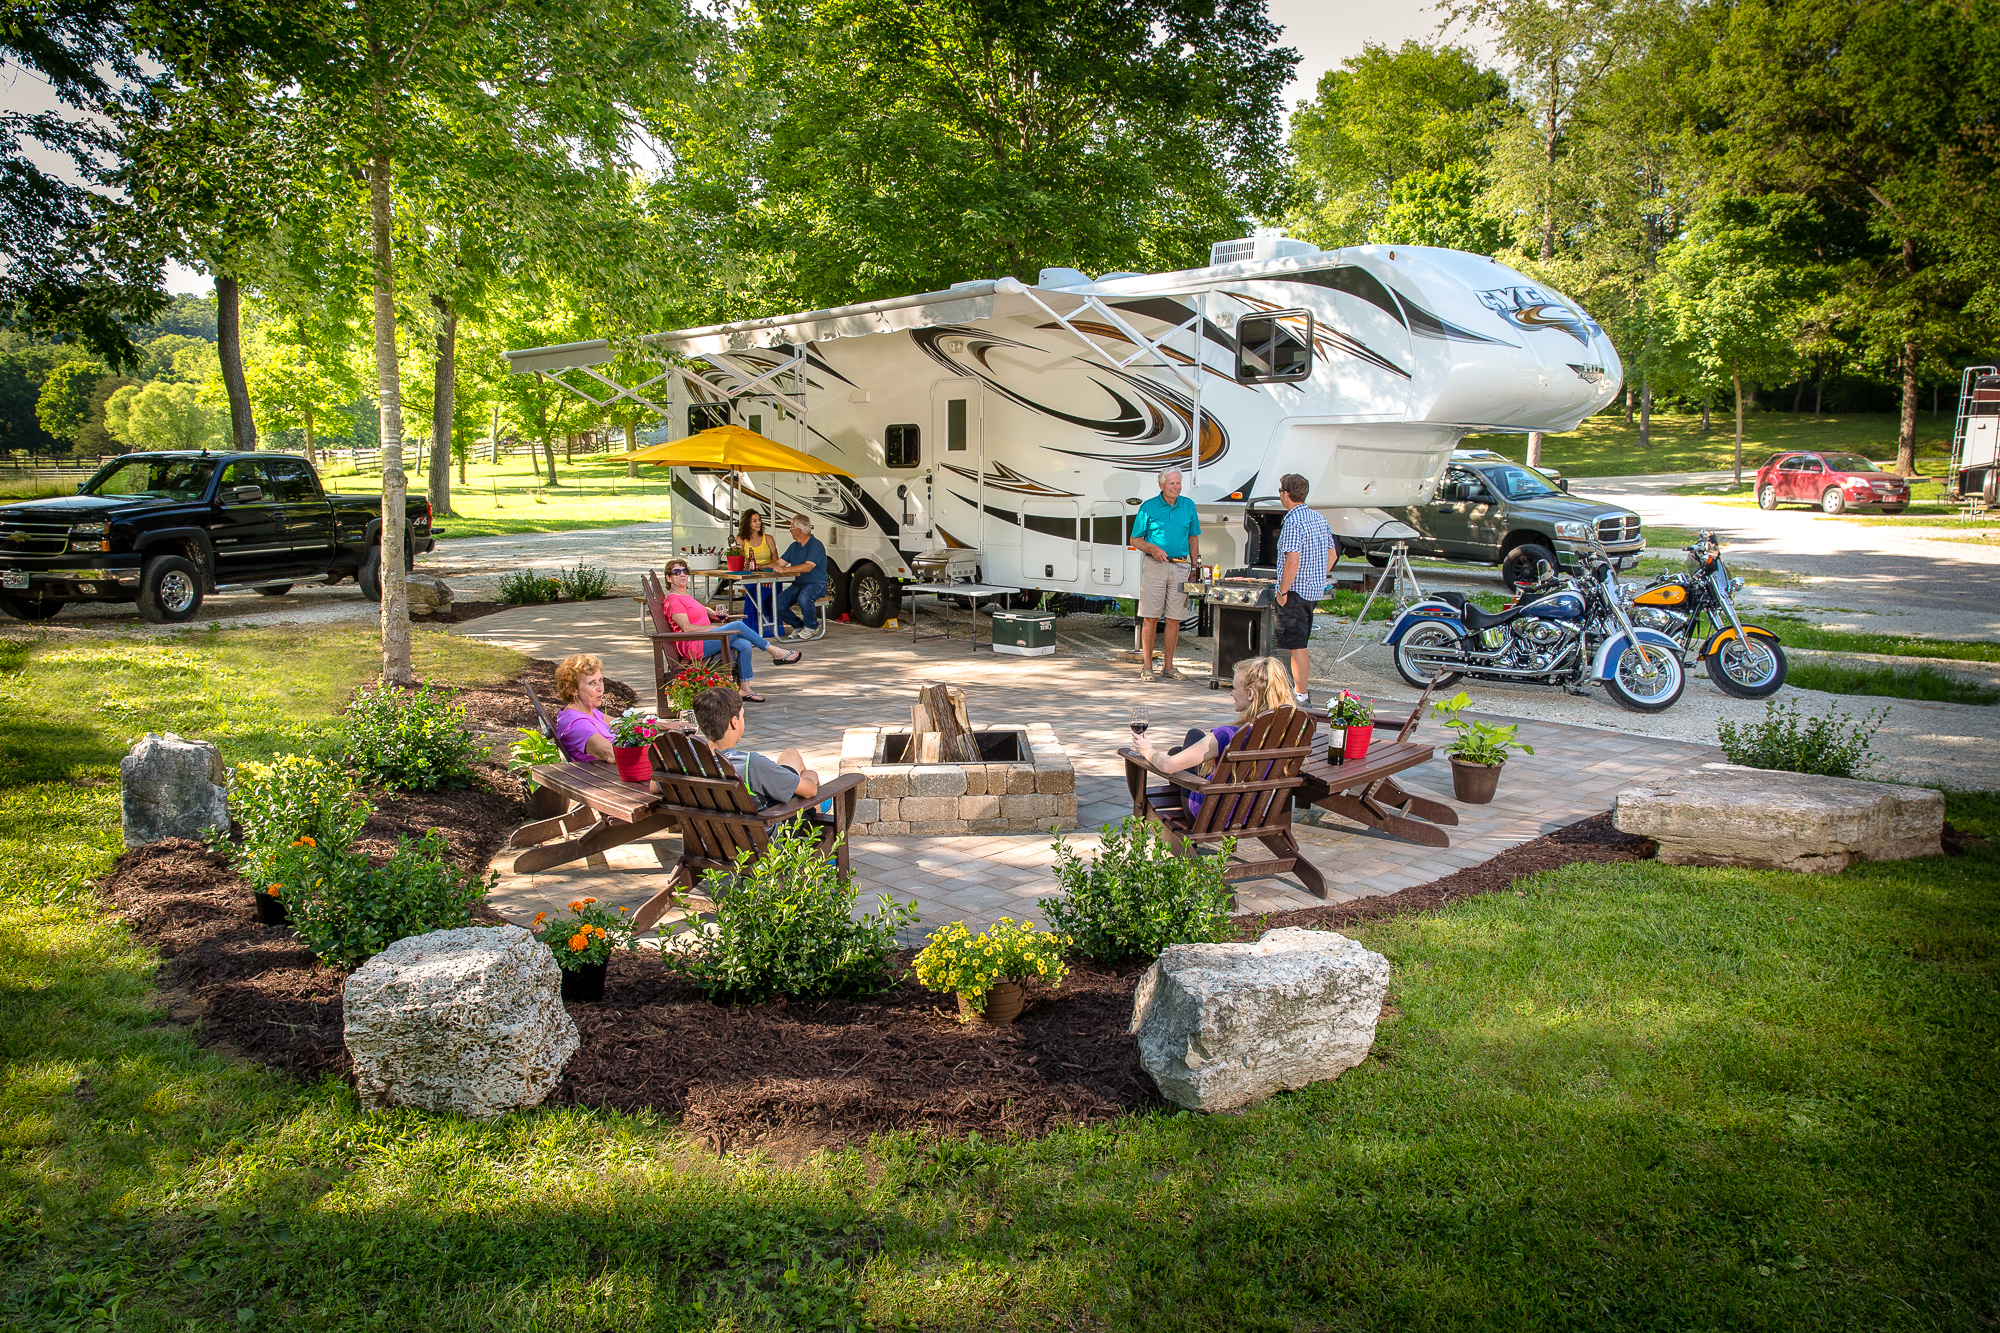 New Deluxe Patio RV Sites With Fire Rings And Gas Grills